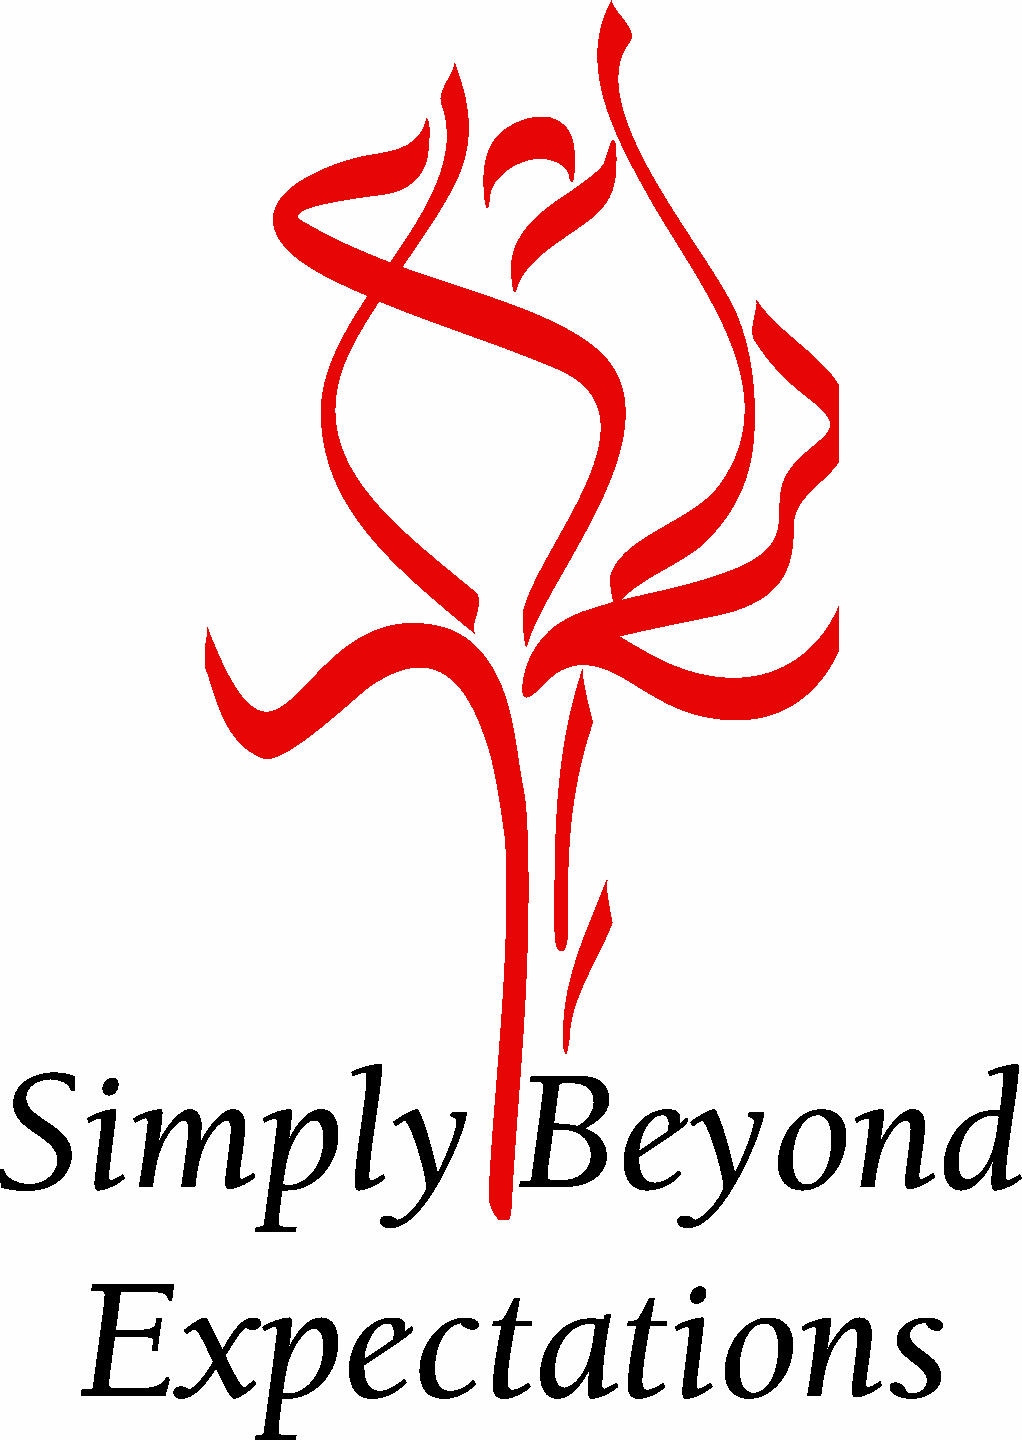 Simply Beyond Expectations Logo